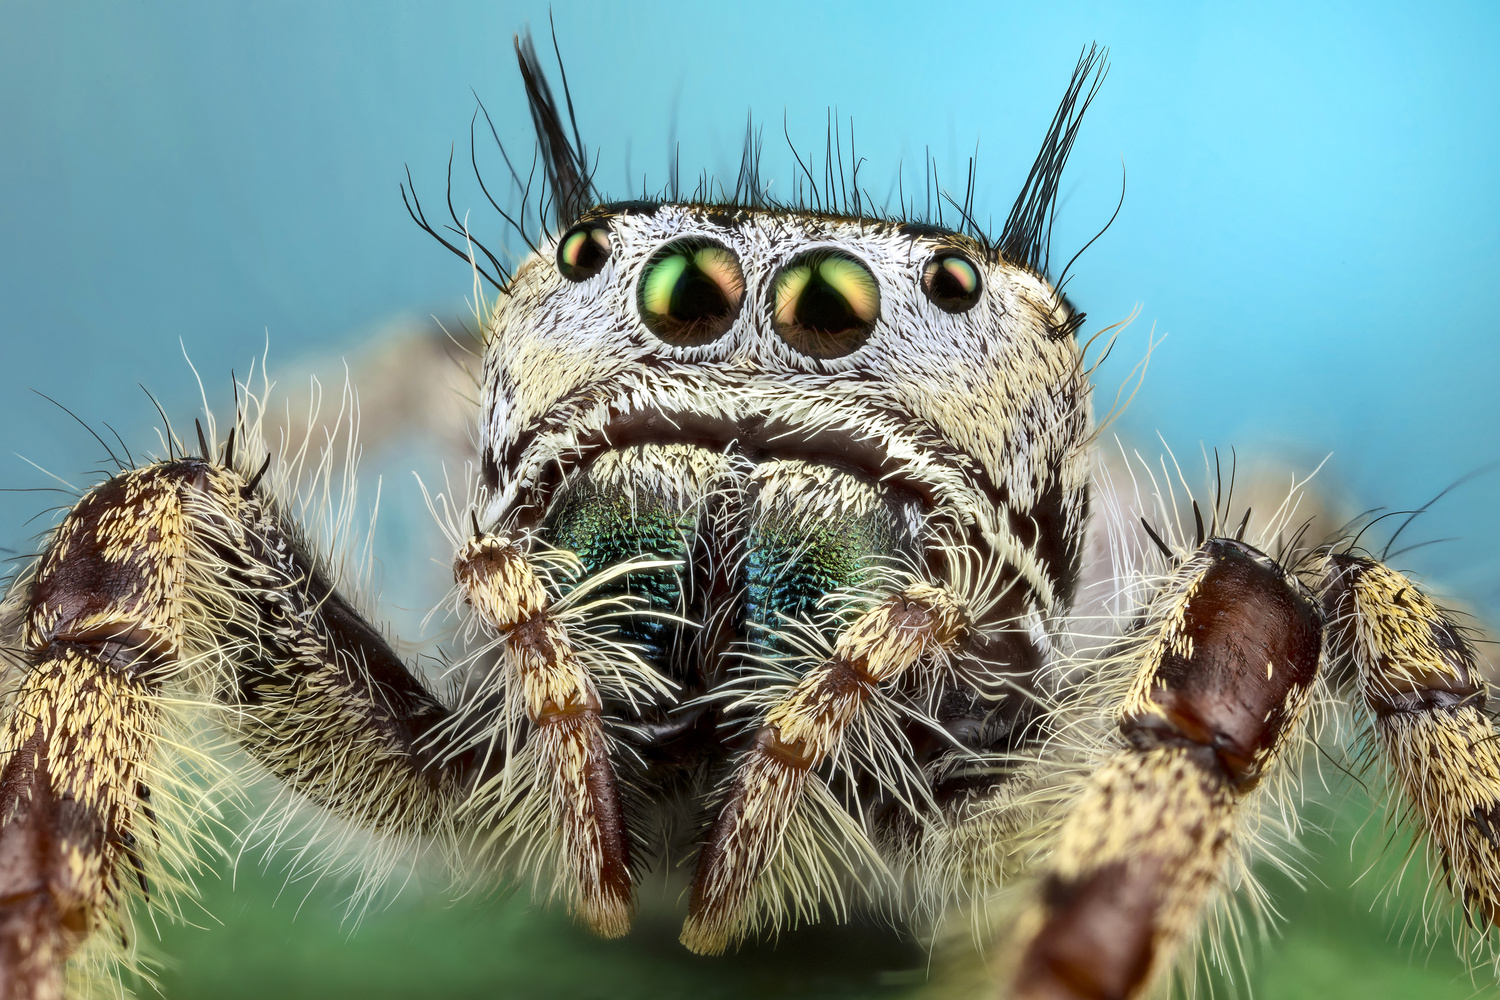 Phidippus texanus female by Andres Moline